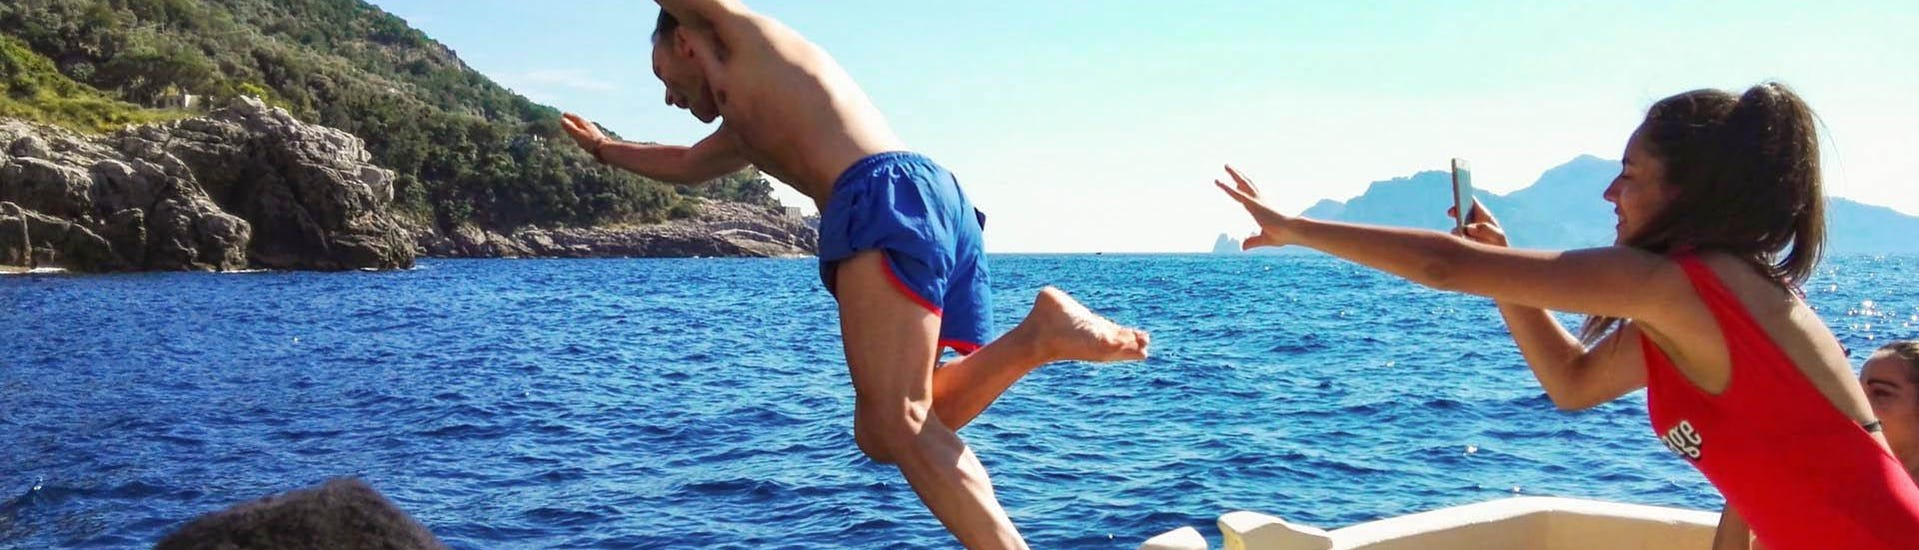 boat-tour-from-sorrento-to-capri-fishing-experience-you-know-boat-hero